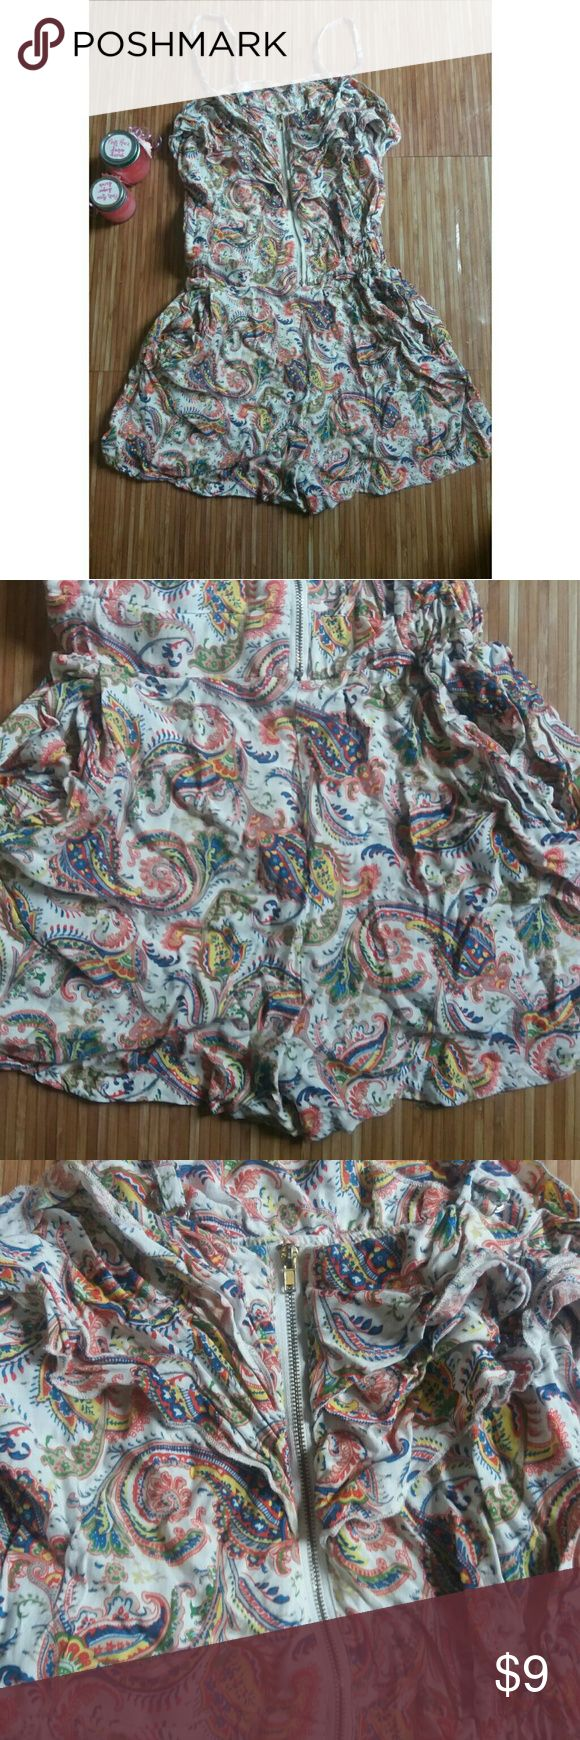 Romper with cute design A white romper with a kind of floral pattern made of multiple different colors. Only worn twice but is amazing for the summer! 60% cotton, 40% polyester. Also has pockets! Pants Jumpsuits & Rompers